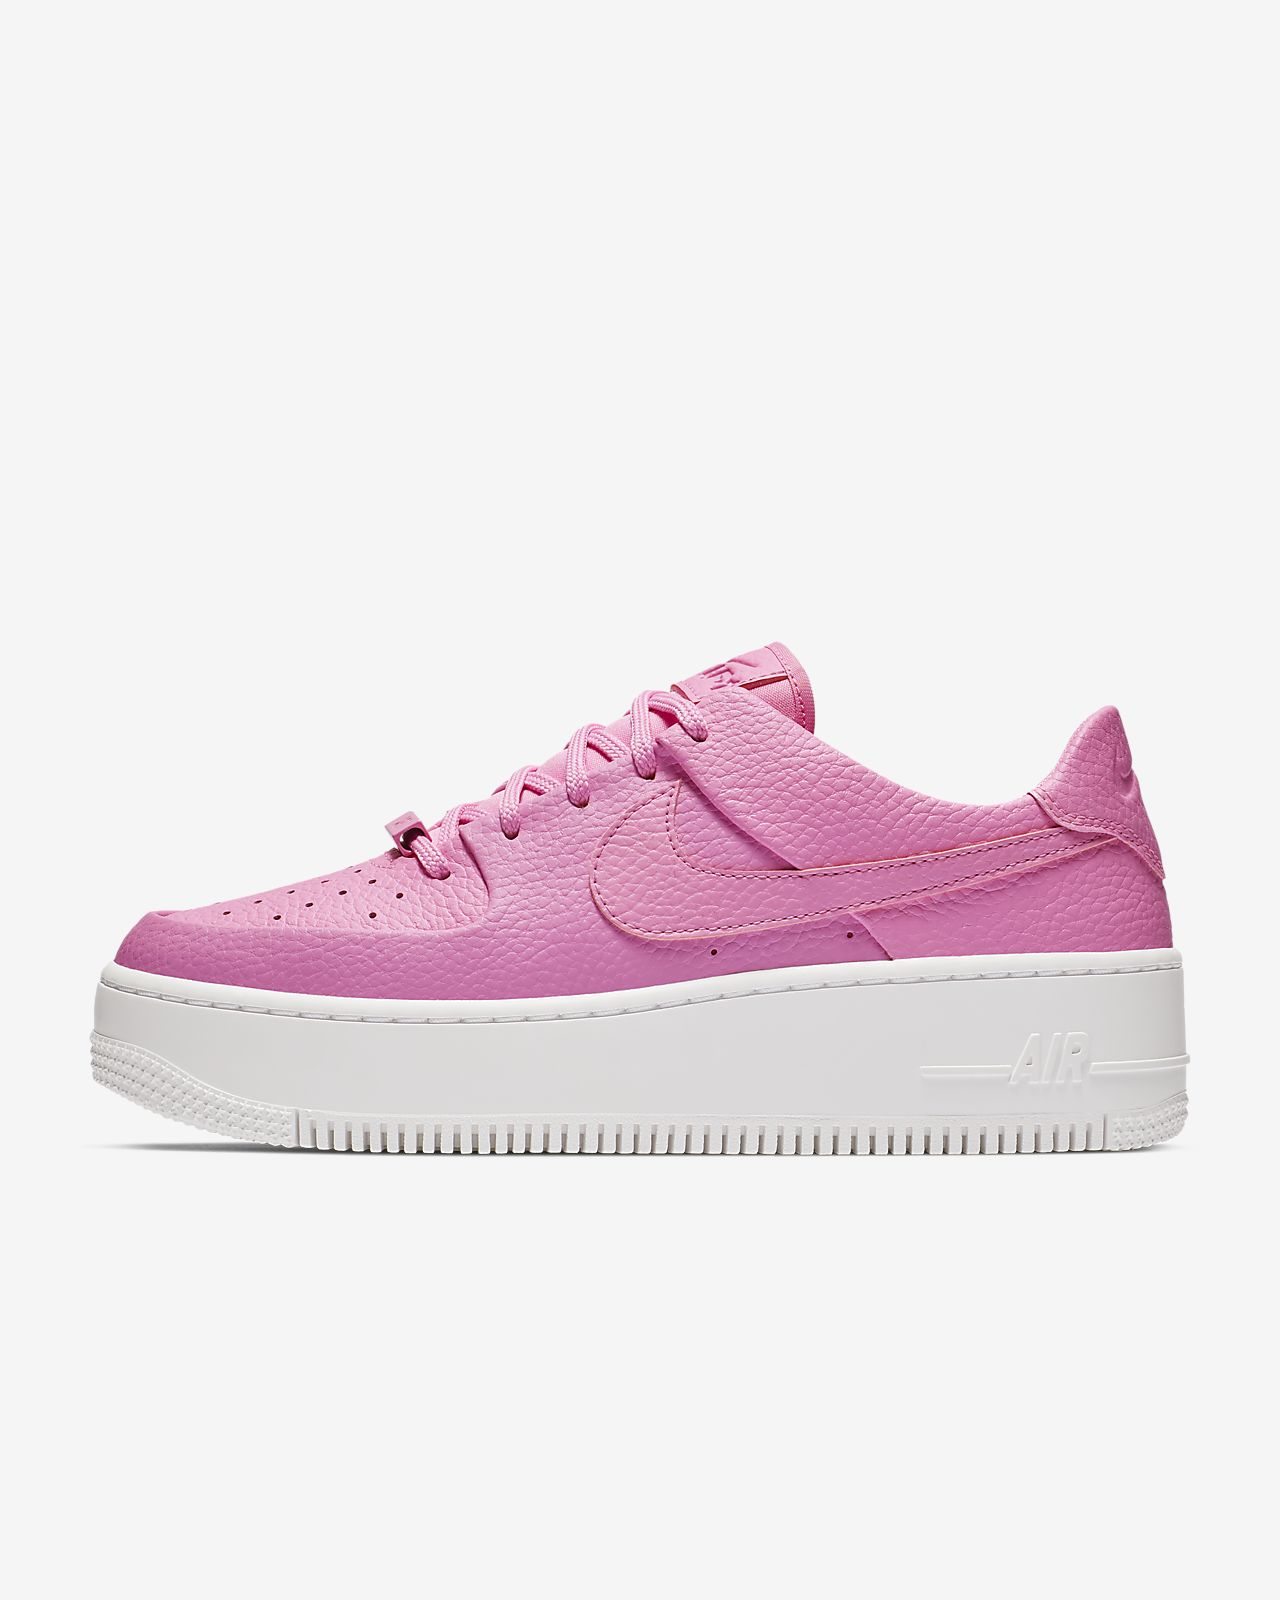 quality design b944f 6e211 ... Nike Air Force 1 Sage Low Womens Shoe